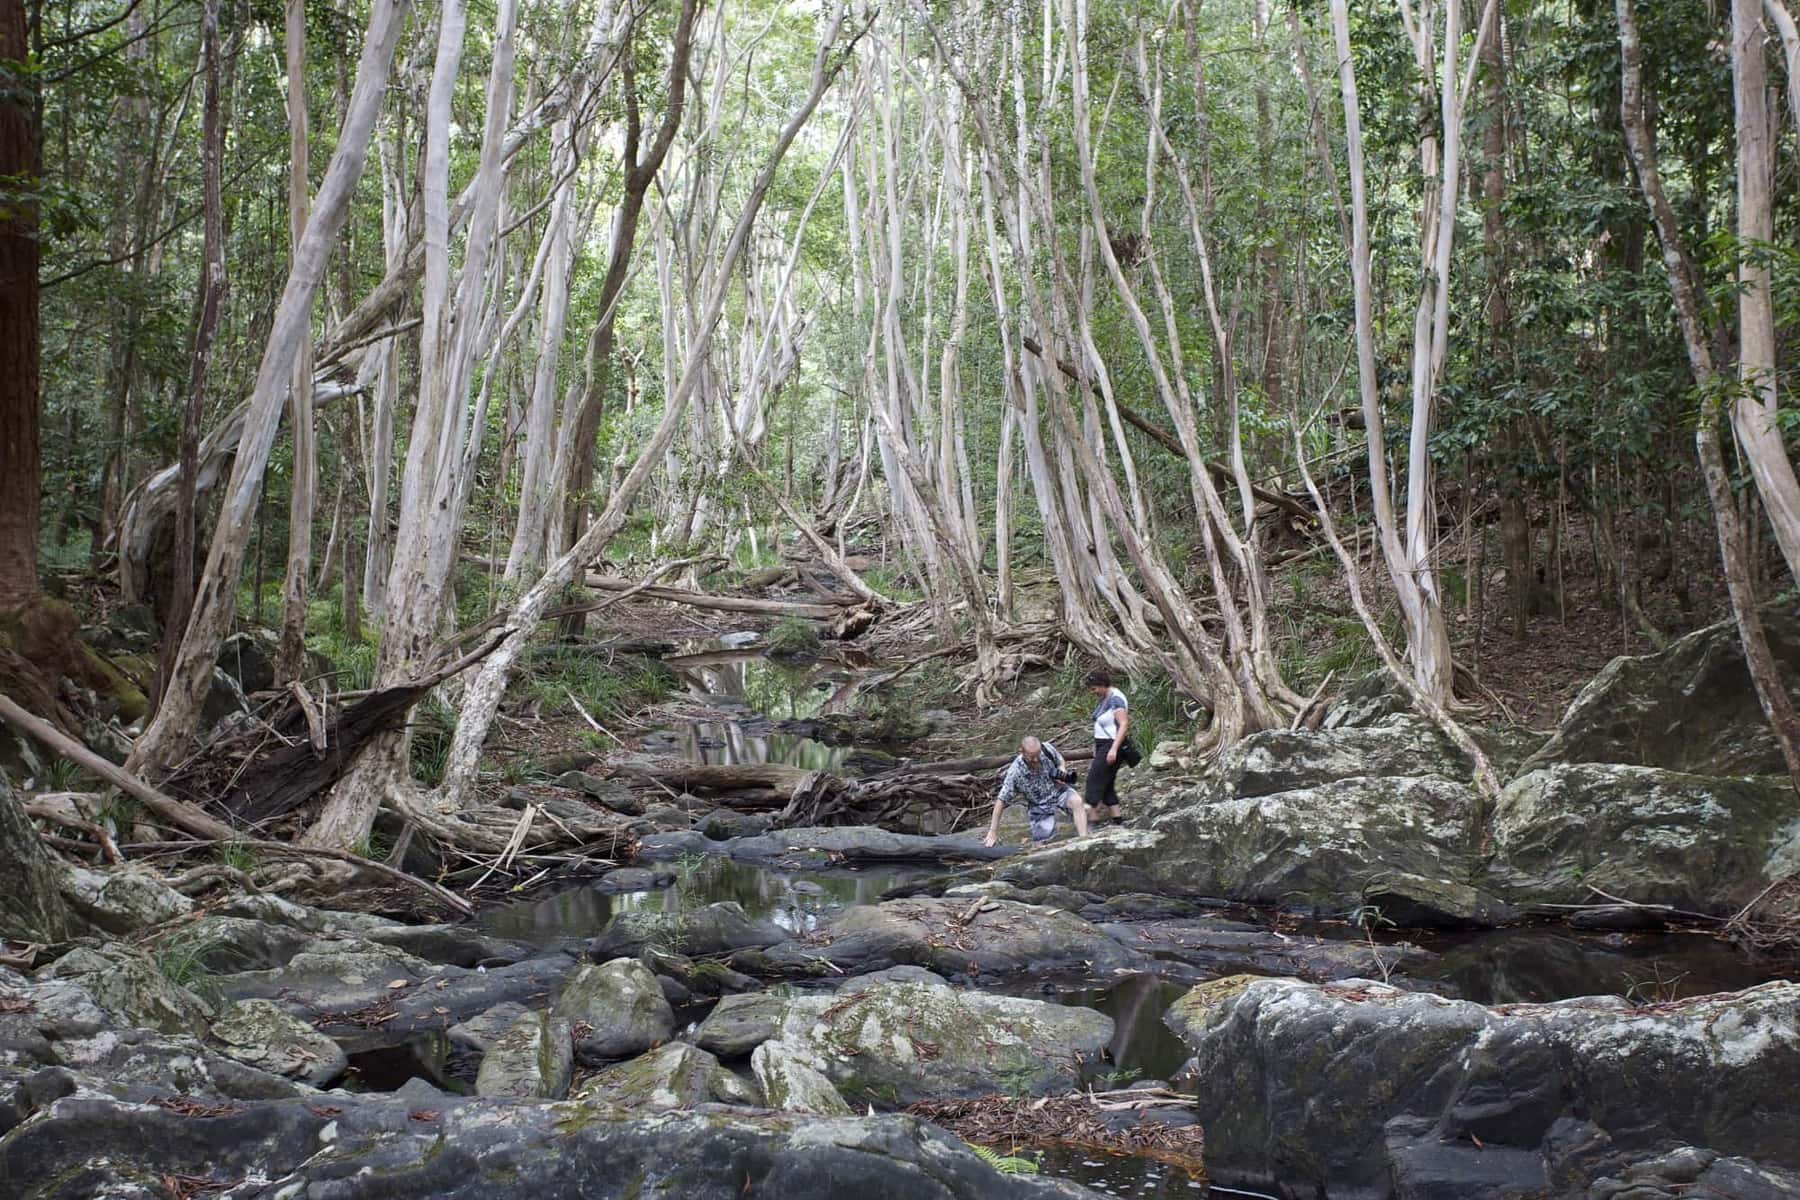 Discover amazing rainforest facts while exploring the Daintree